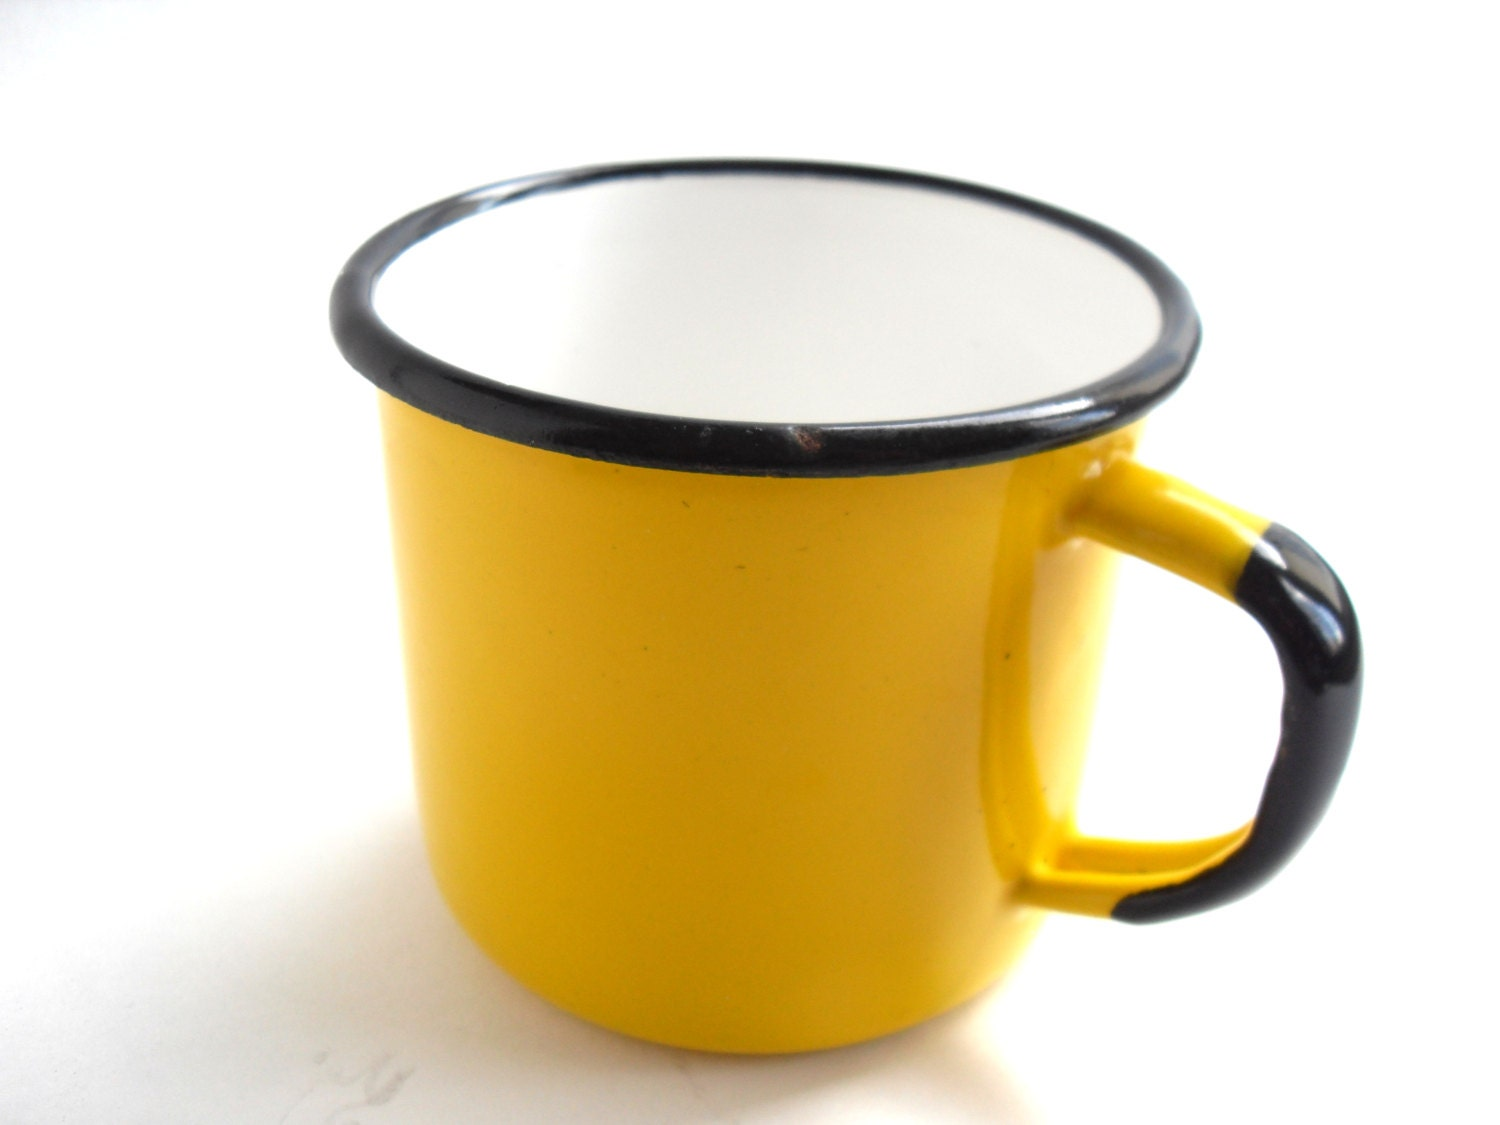 vintage enamel metal mug yellow retro cup made in poland. Black Bedroom Furniture Sets. Home Design Ideas